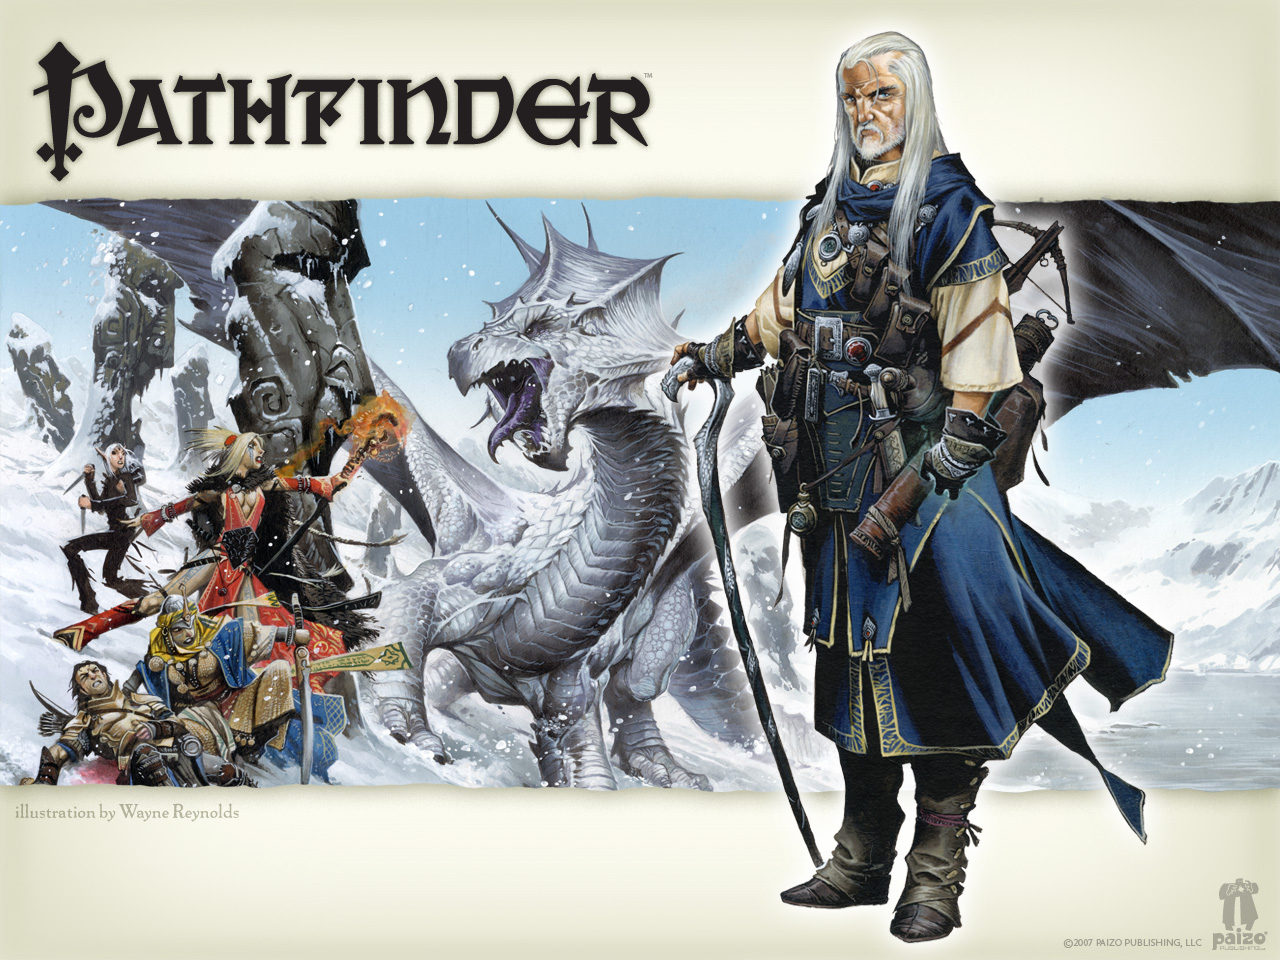 Obsidian Entertainment Gains Rights to Pathfinder License - Roll for Initiative